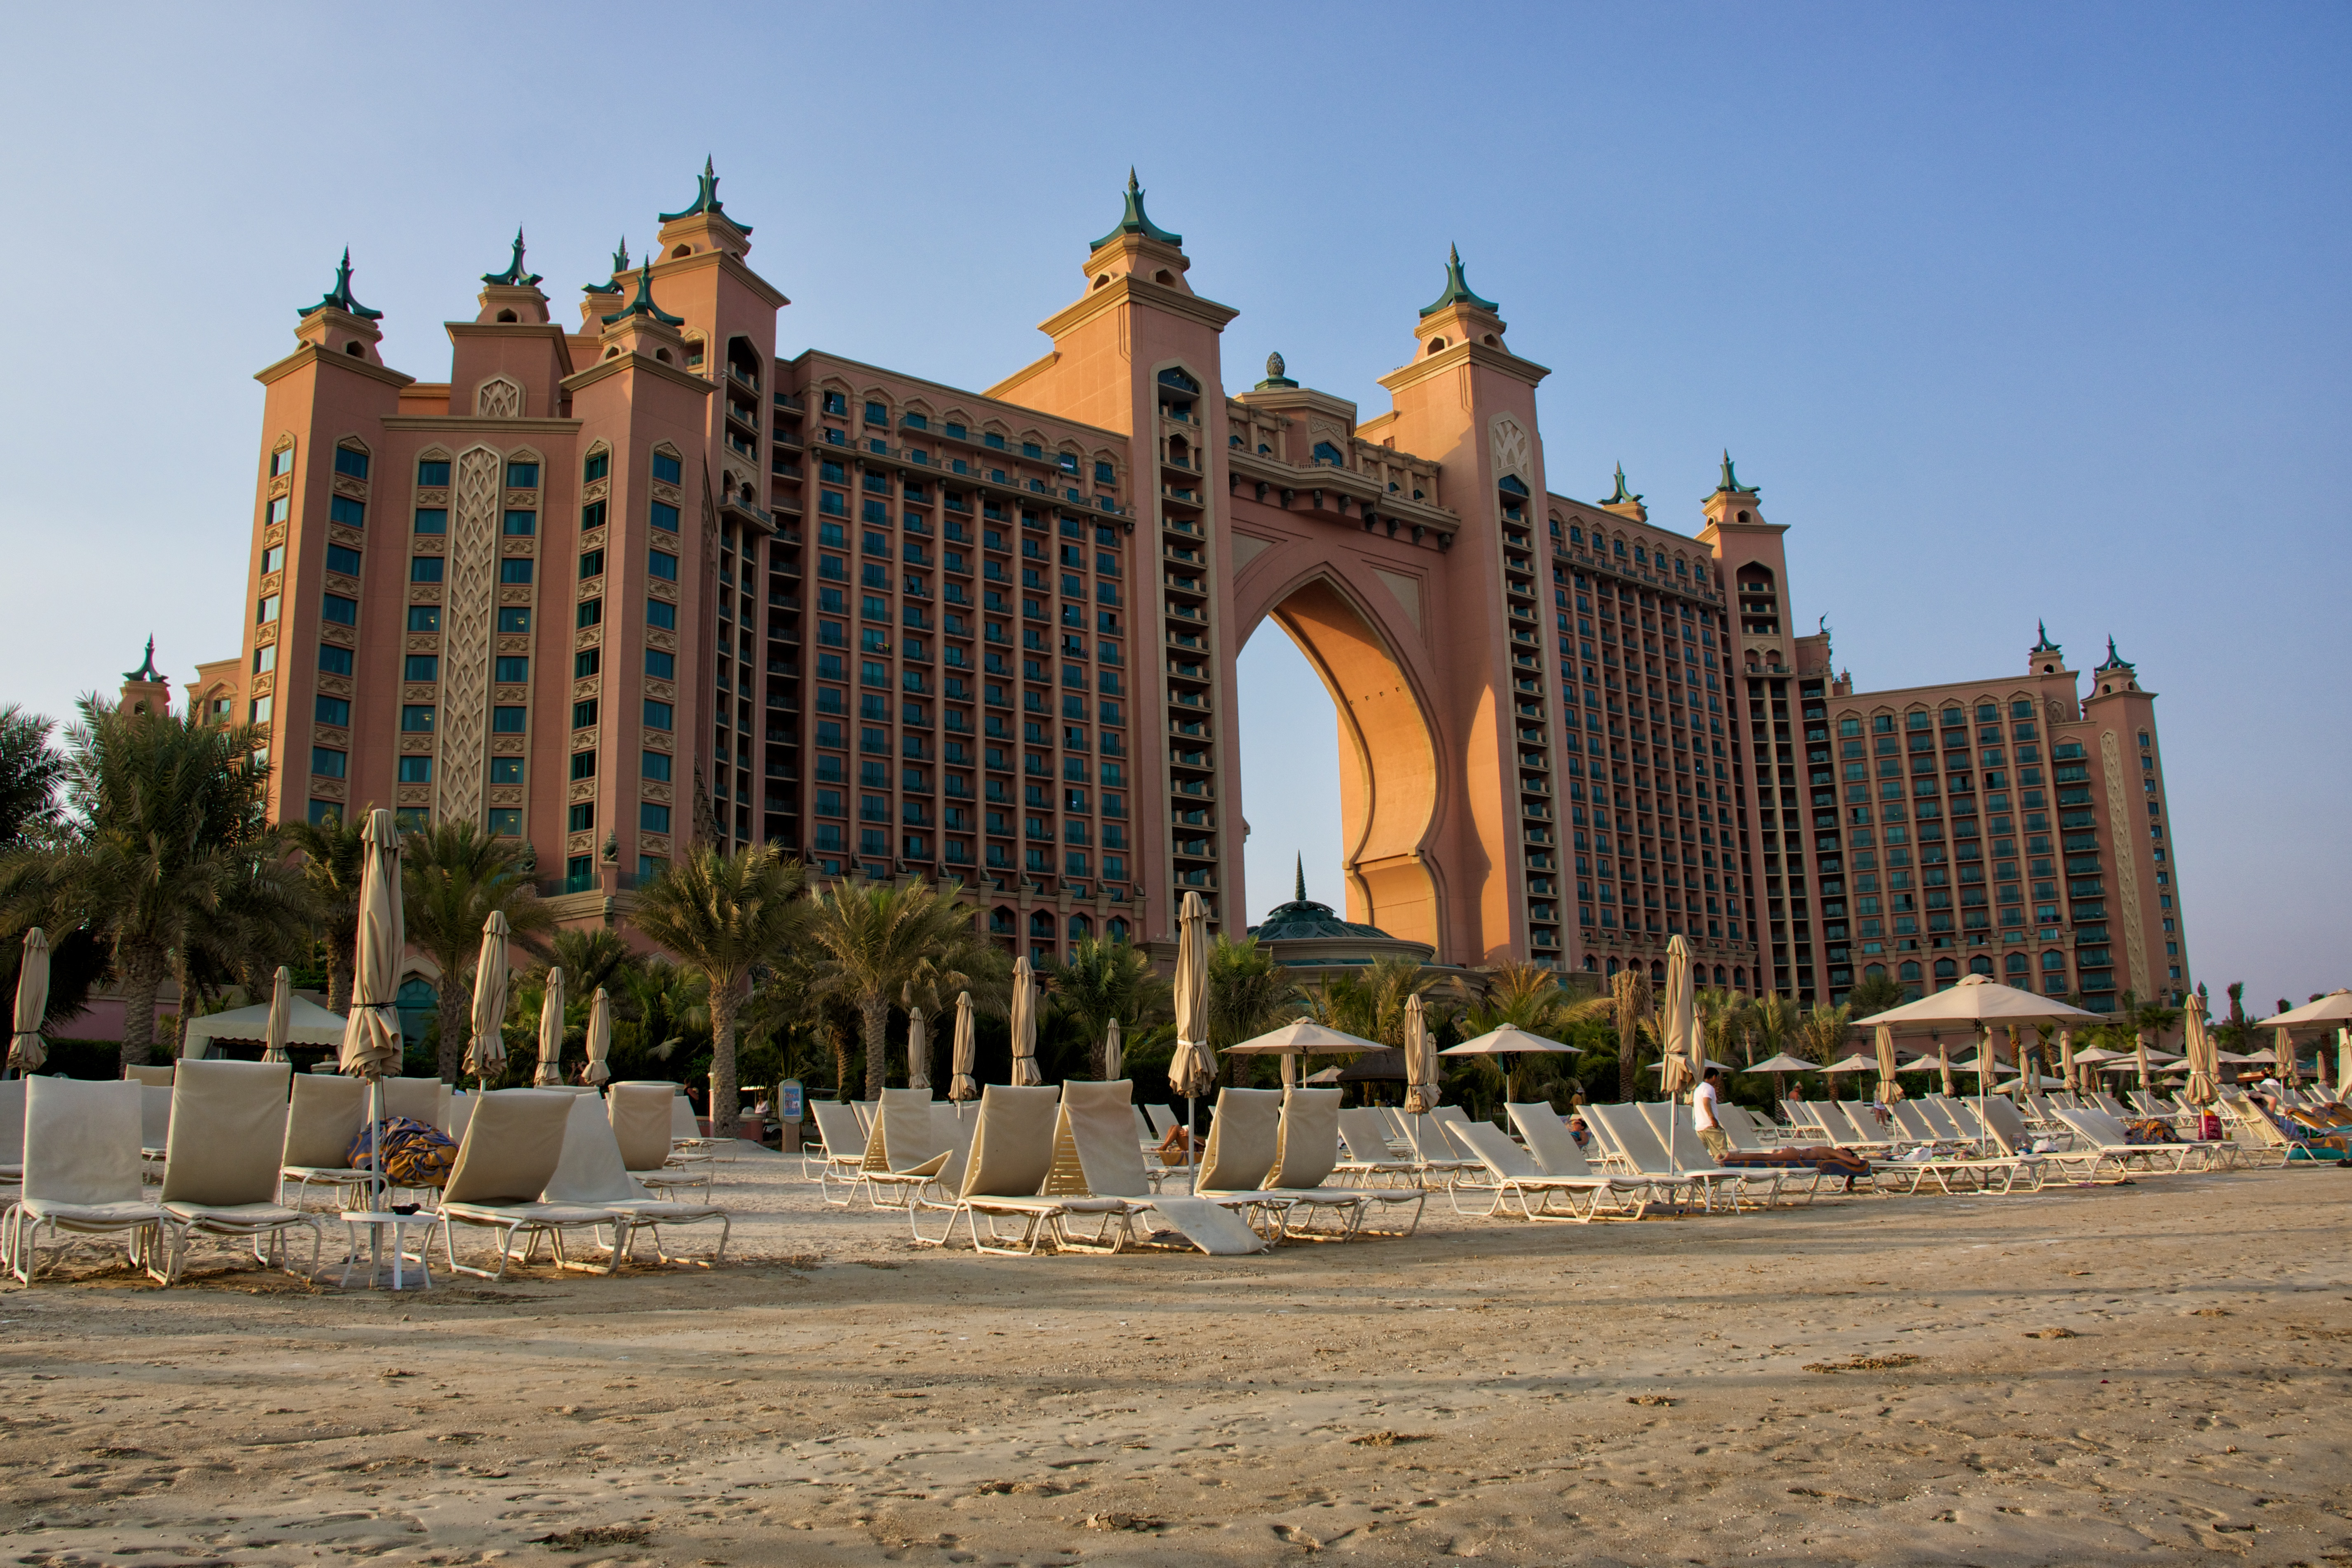 Atlantis the palm hotel in dubai thousand wonders for Hotel dubai palm